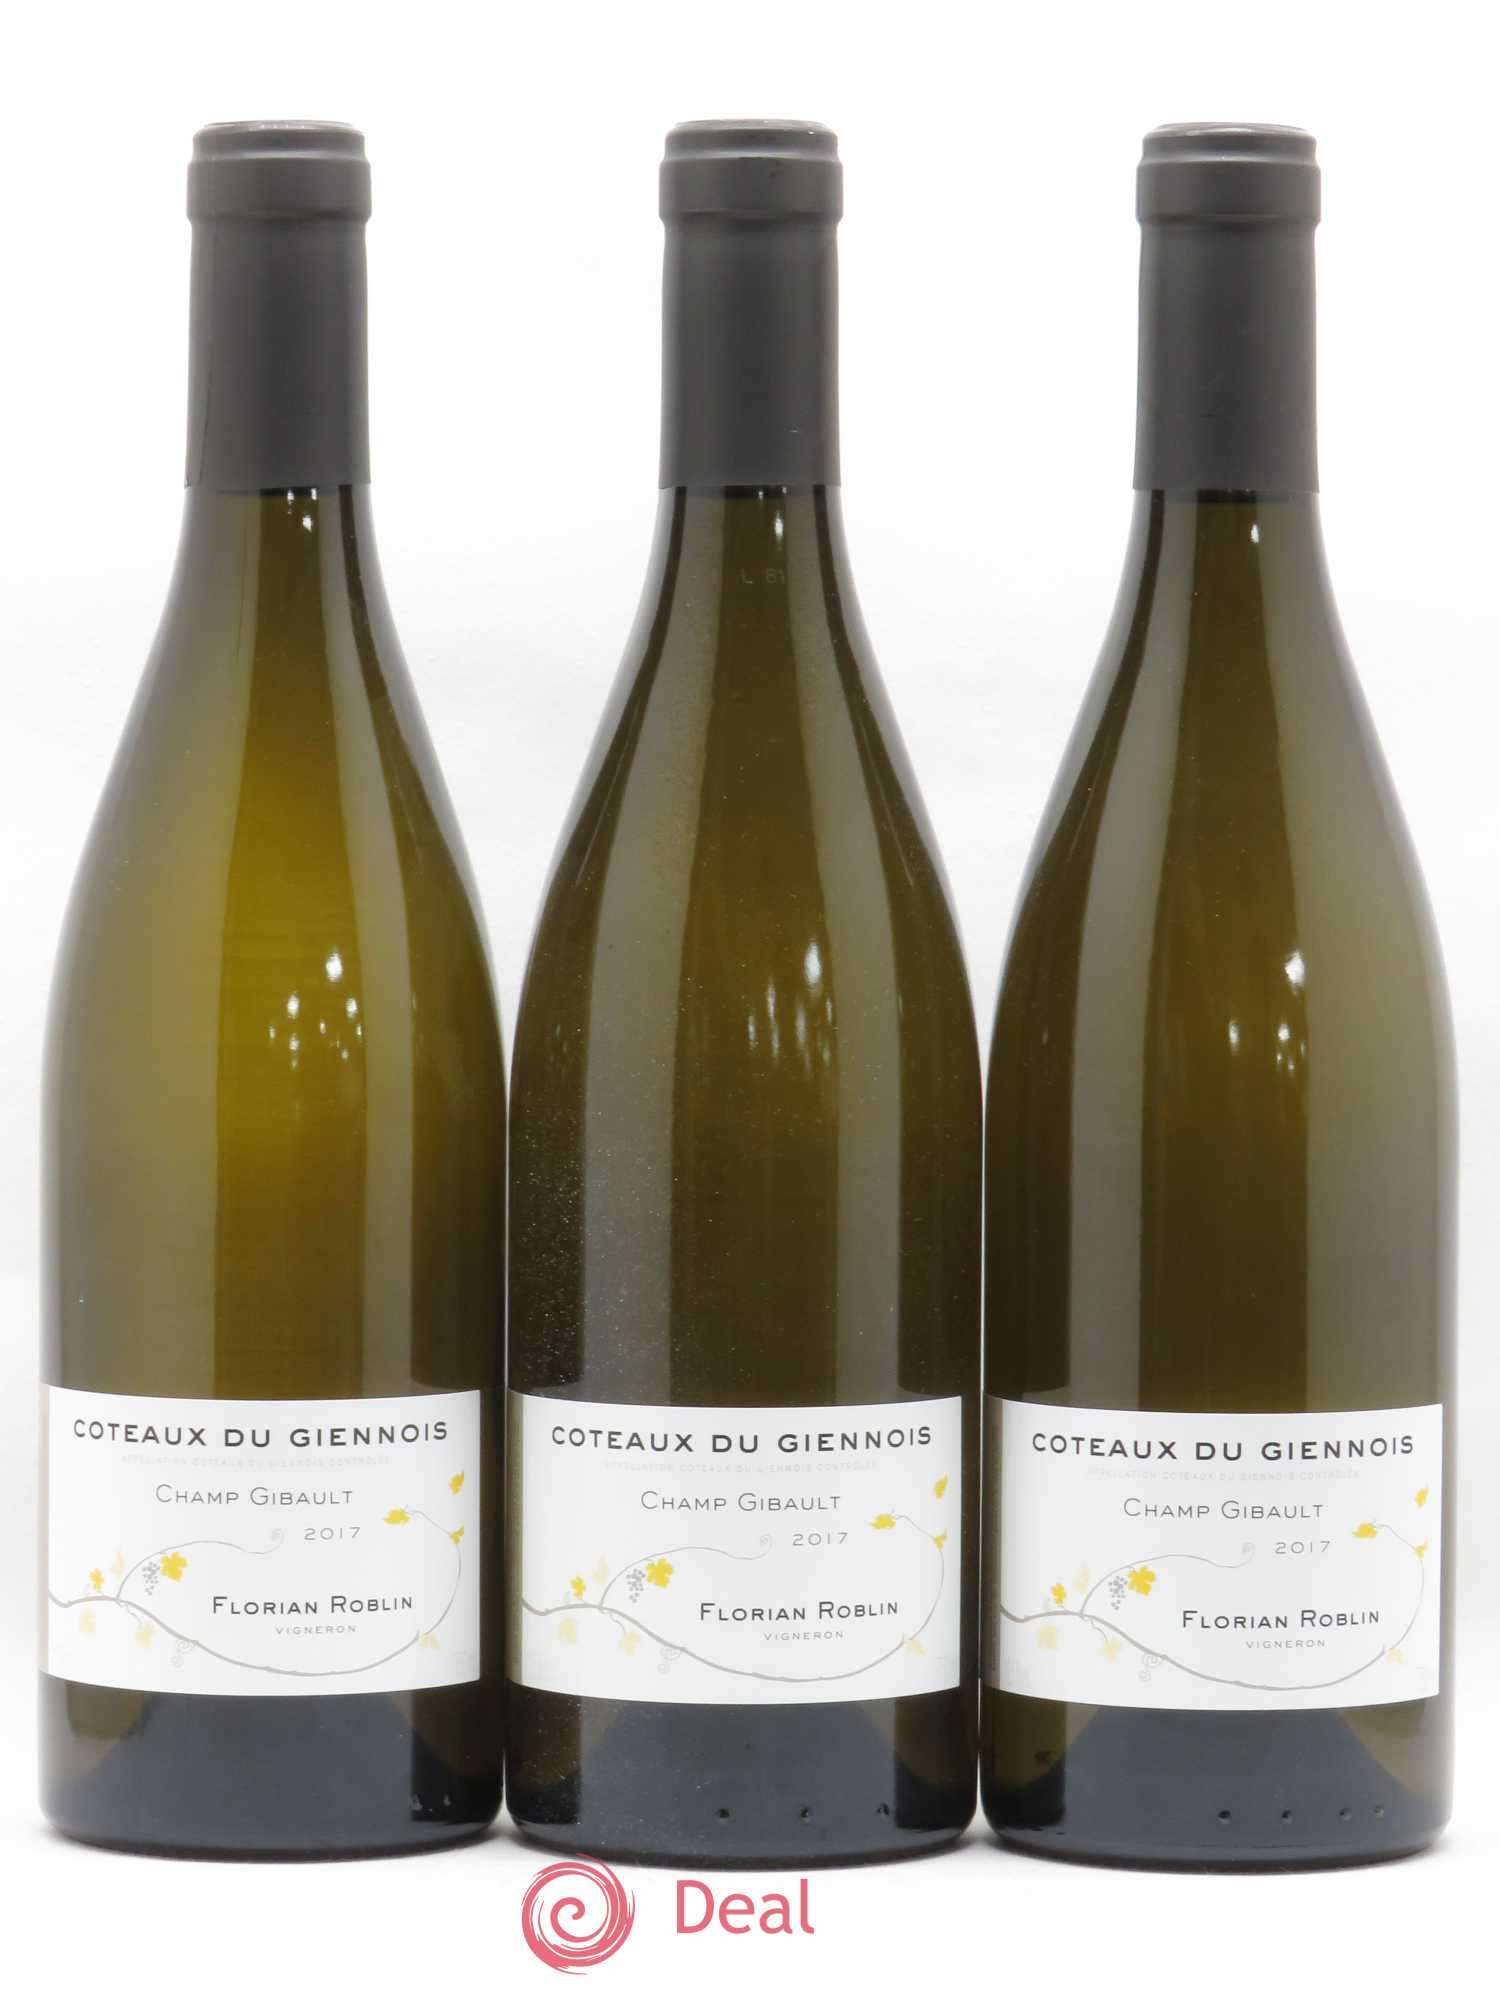 Divers Coteaux du Giennois Champ Gibault Florian Roblin (no reserve) 2017 - Lot of 3 Bottles